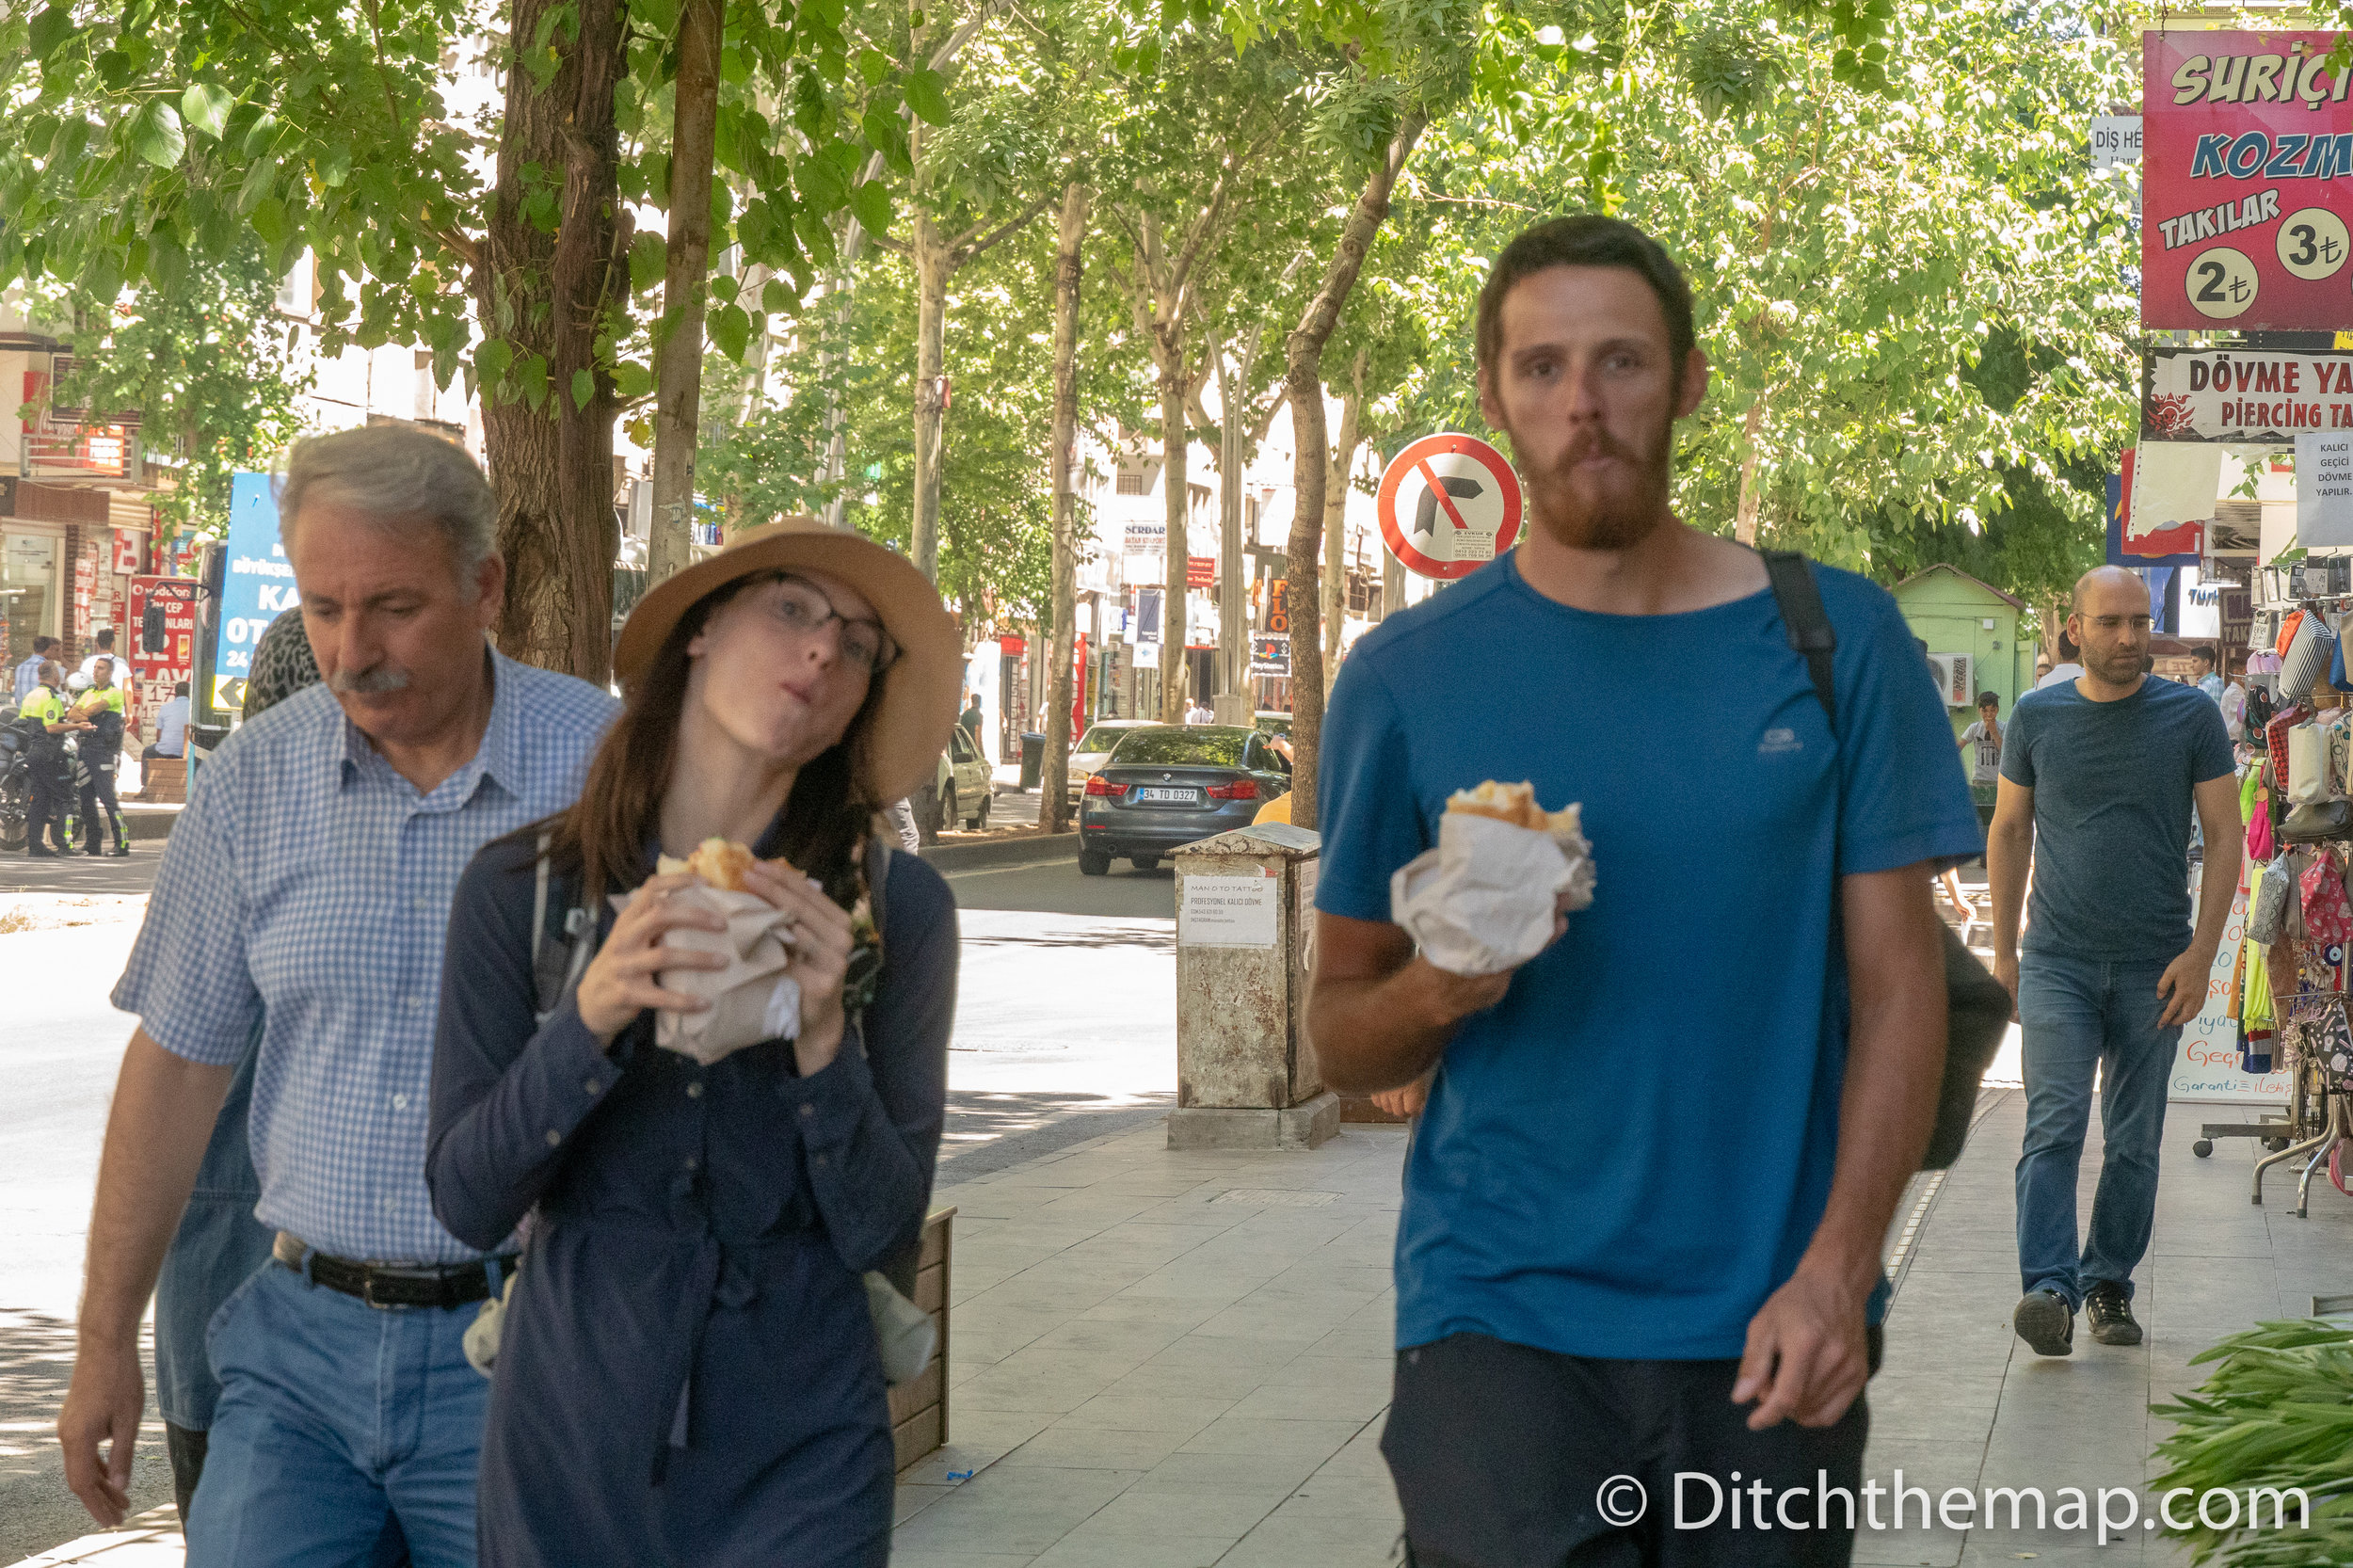 Sylvie and Robert enjoy a Turkish breakfast Sandwich in Diyarbakir